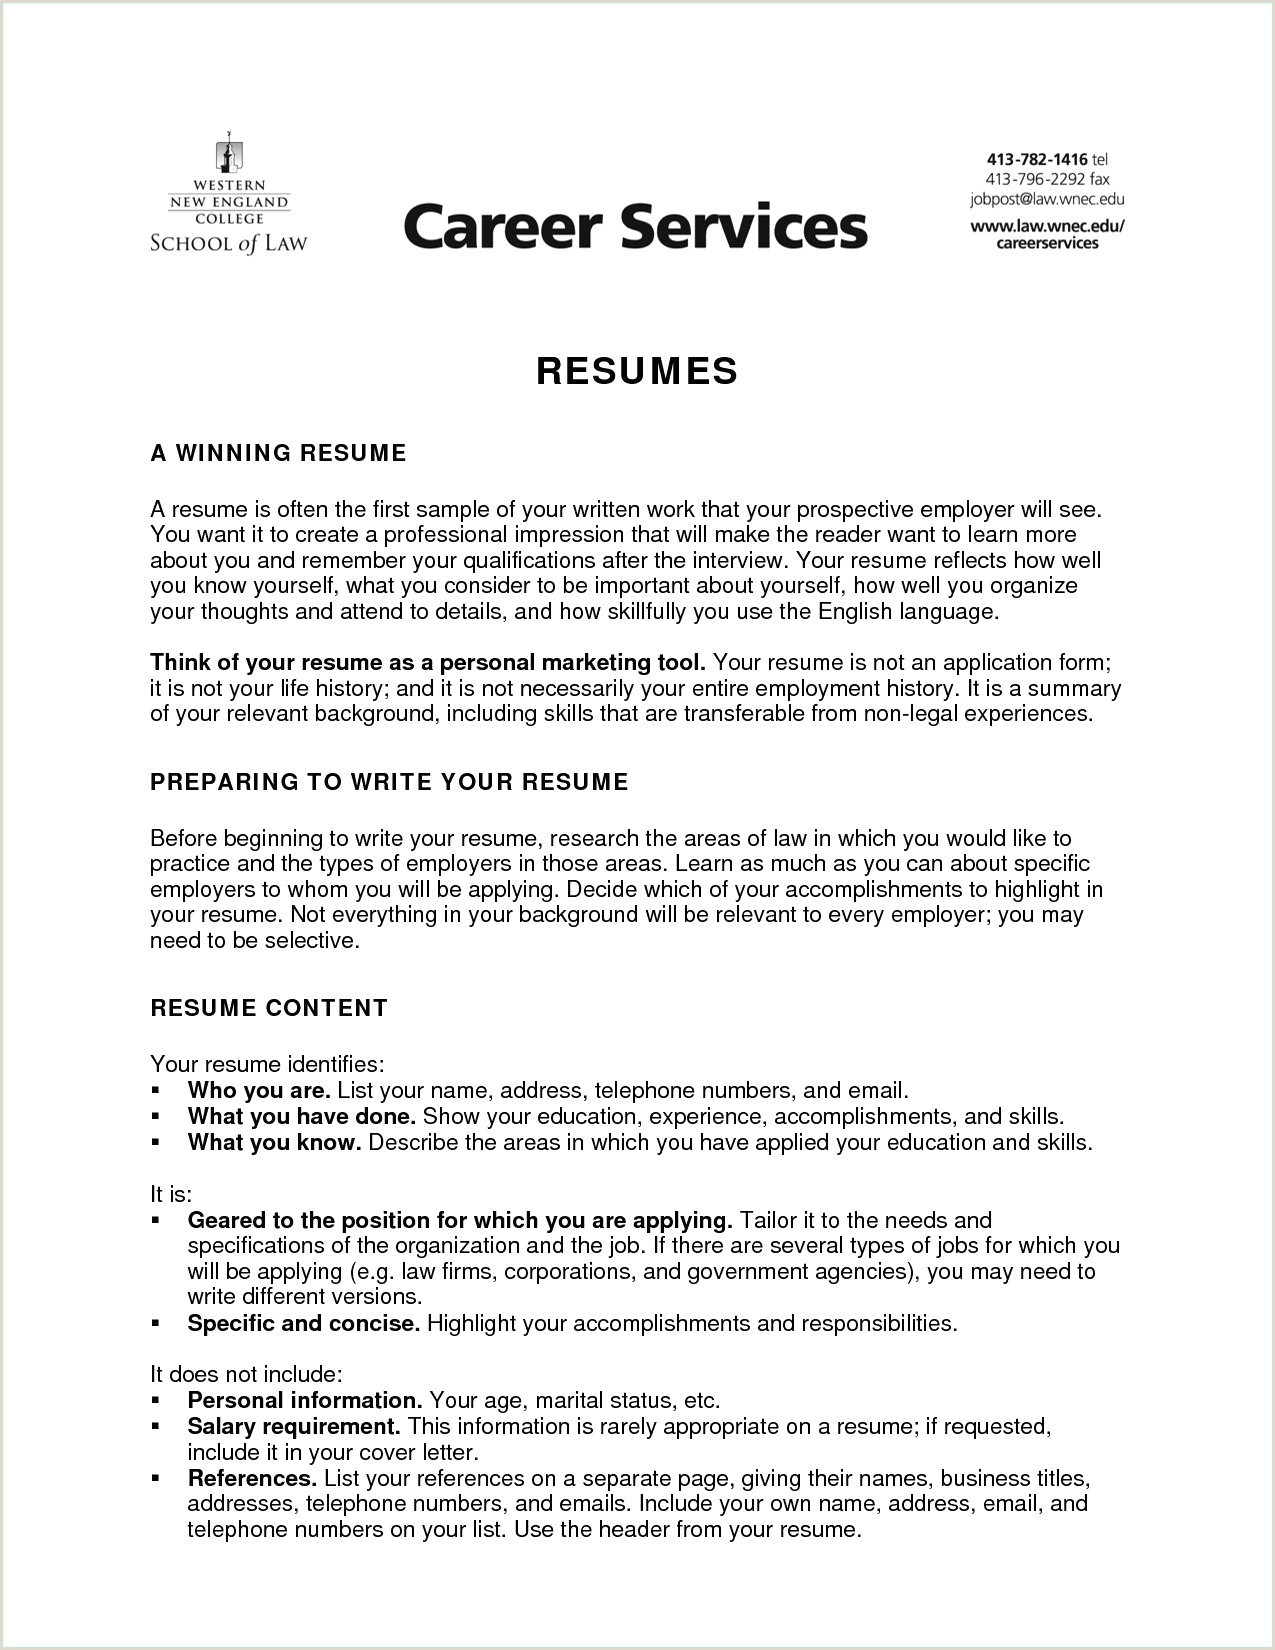 Resume Template Ideas New Customer Service Skills for Resume